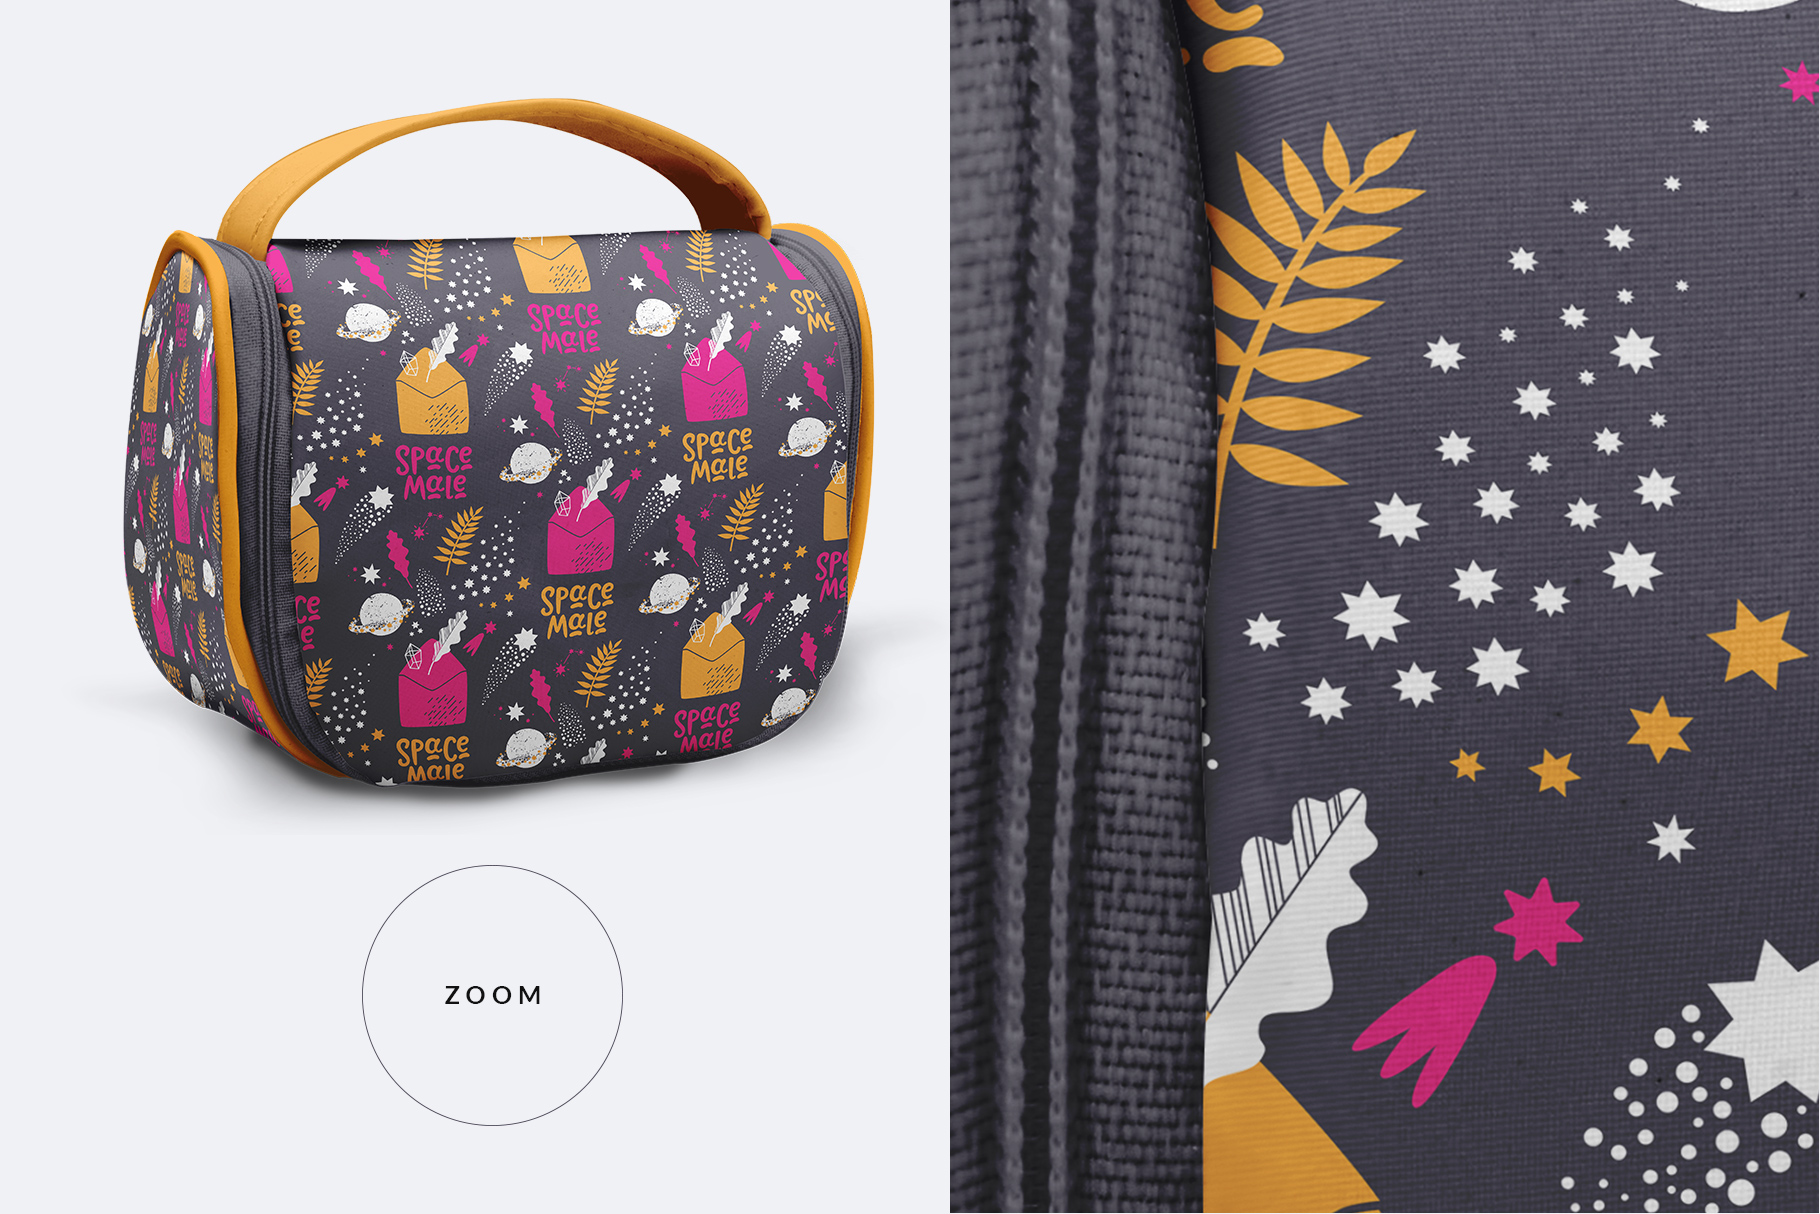 zoomed in image of the travel cosmetic bag mockup